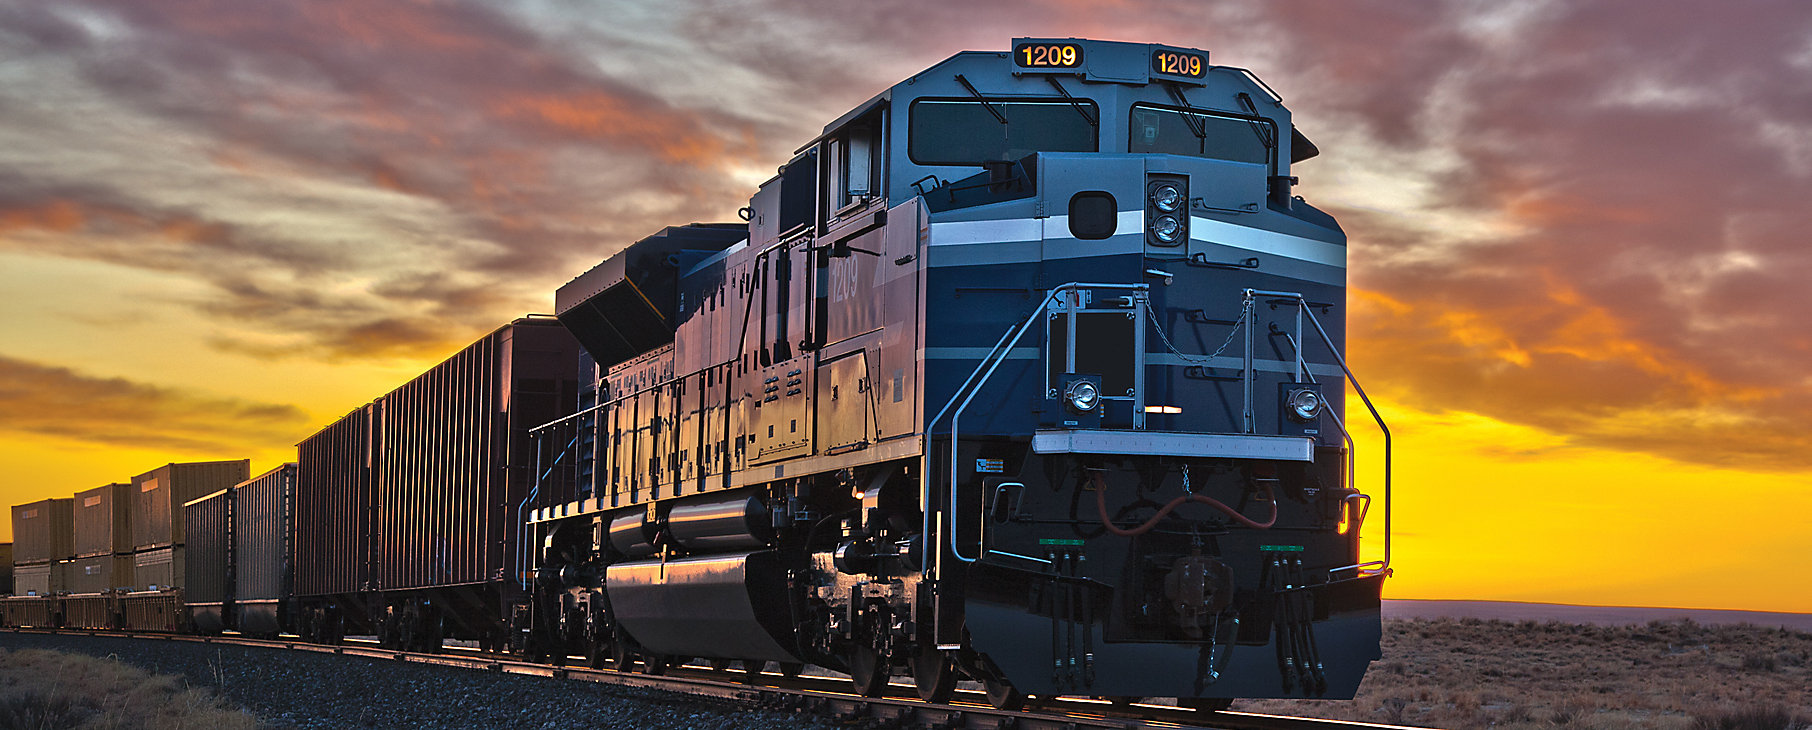 EMD® Locomotives, EMD